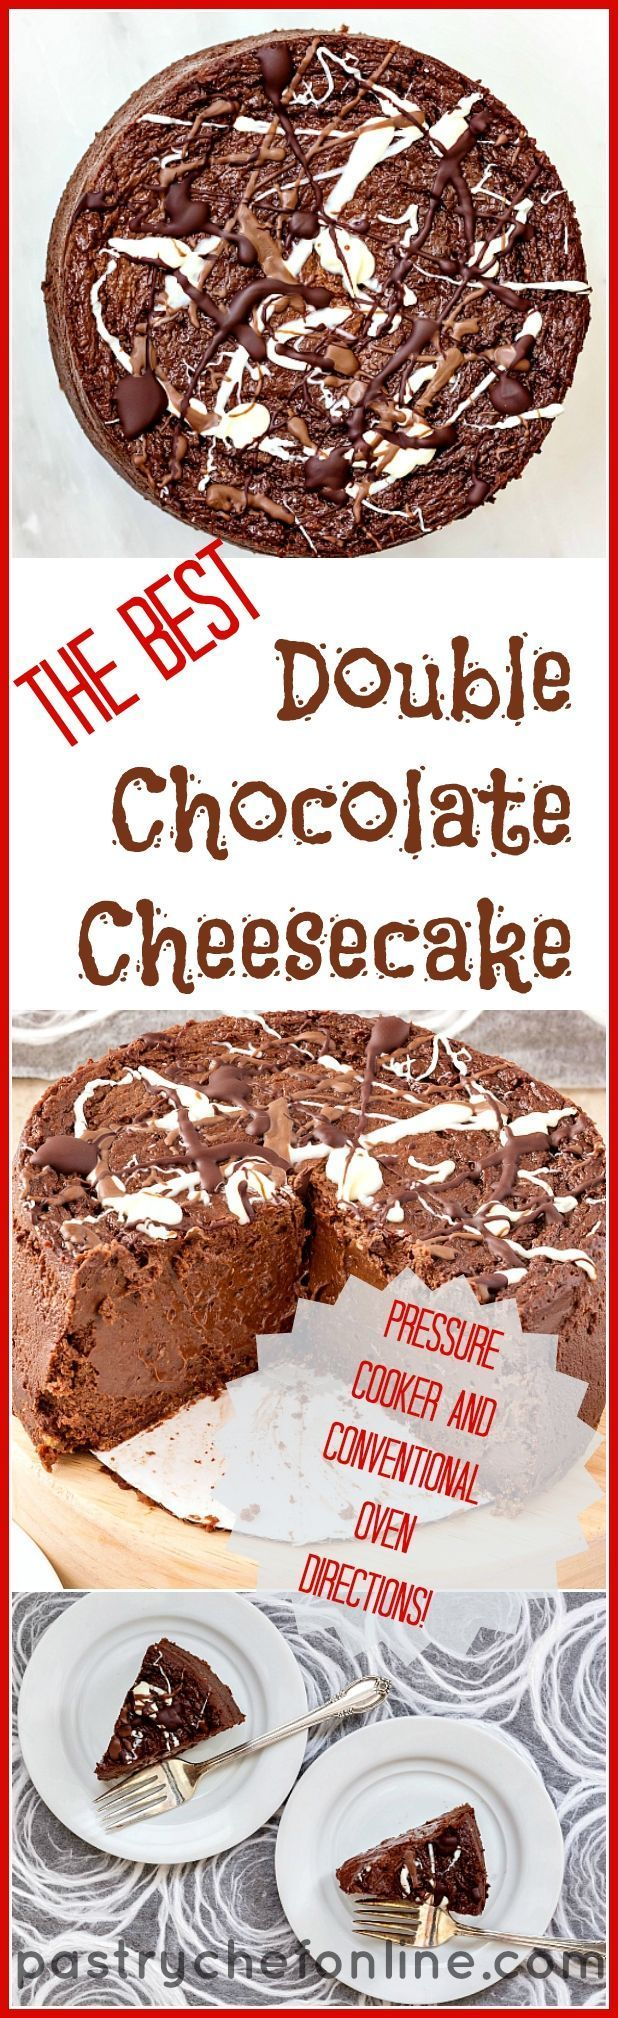 """This might just be the only chocolate cheesecake recipe you need. It is certainly decadent, smooth, creamy and delicious. Make a 6"""" cake to serve 6-8 or double the recipe to make a 9"""" cake to serve 16. Either way, this cake is a stunner. Included are directions for cooking in a pressure cooker as well as baking in the oven. Try it, and see if you don't think this is the best double chocolate cheesecake recipe around!   pastrychefonline.com"""